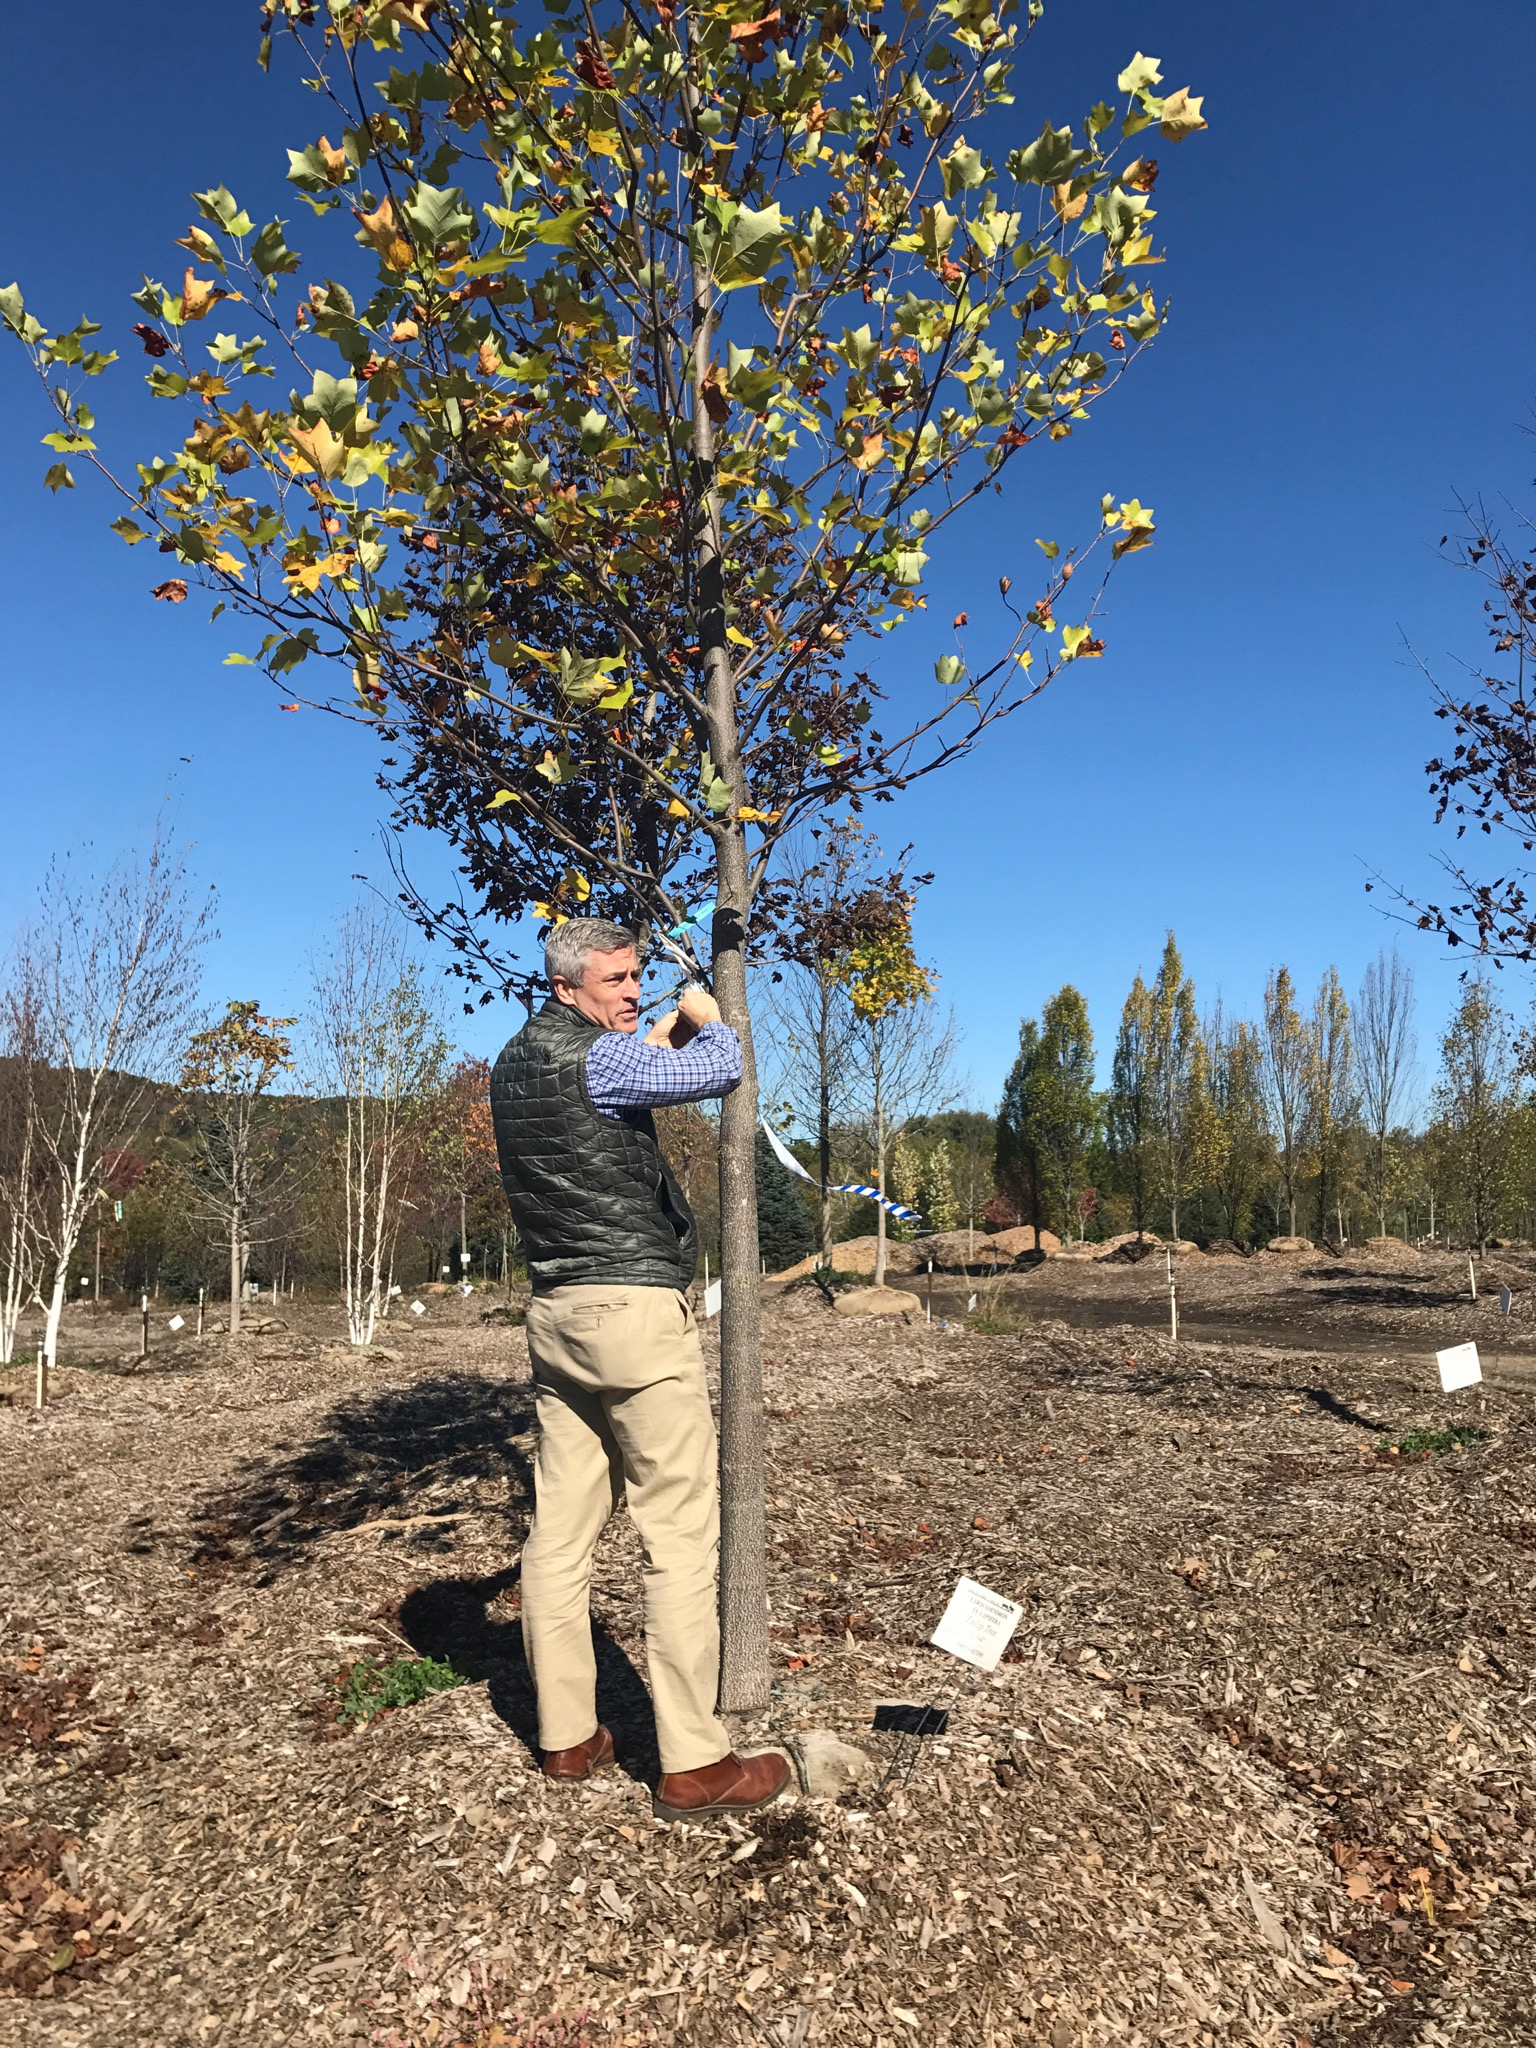 Hardscrabble Nursery: Christian tags a Tulip Tree slated for Disbrow